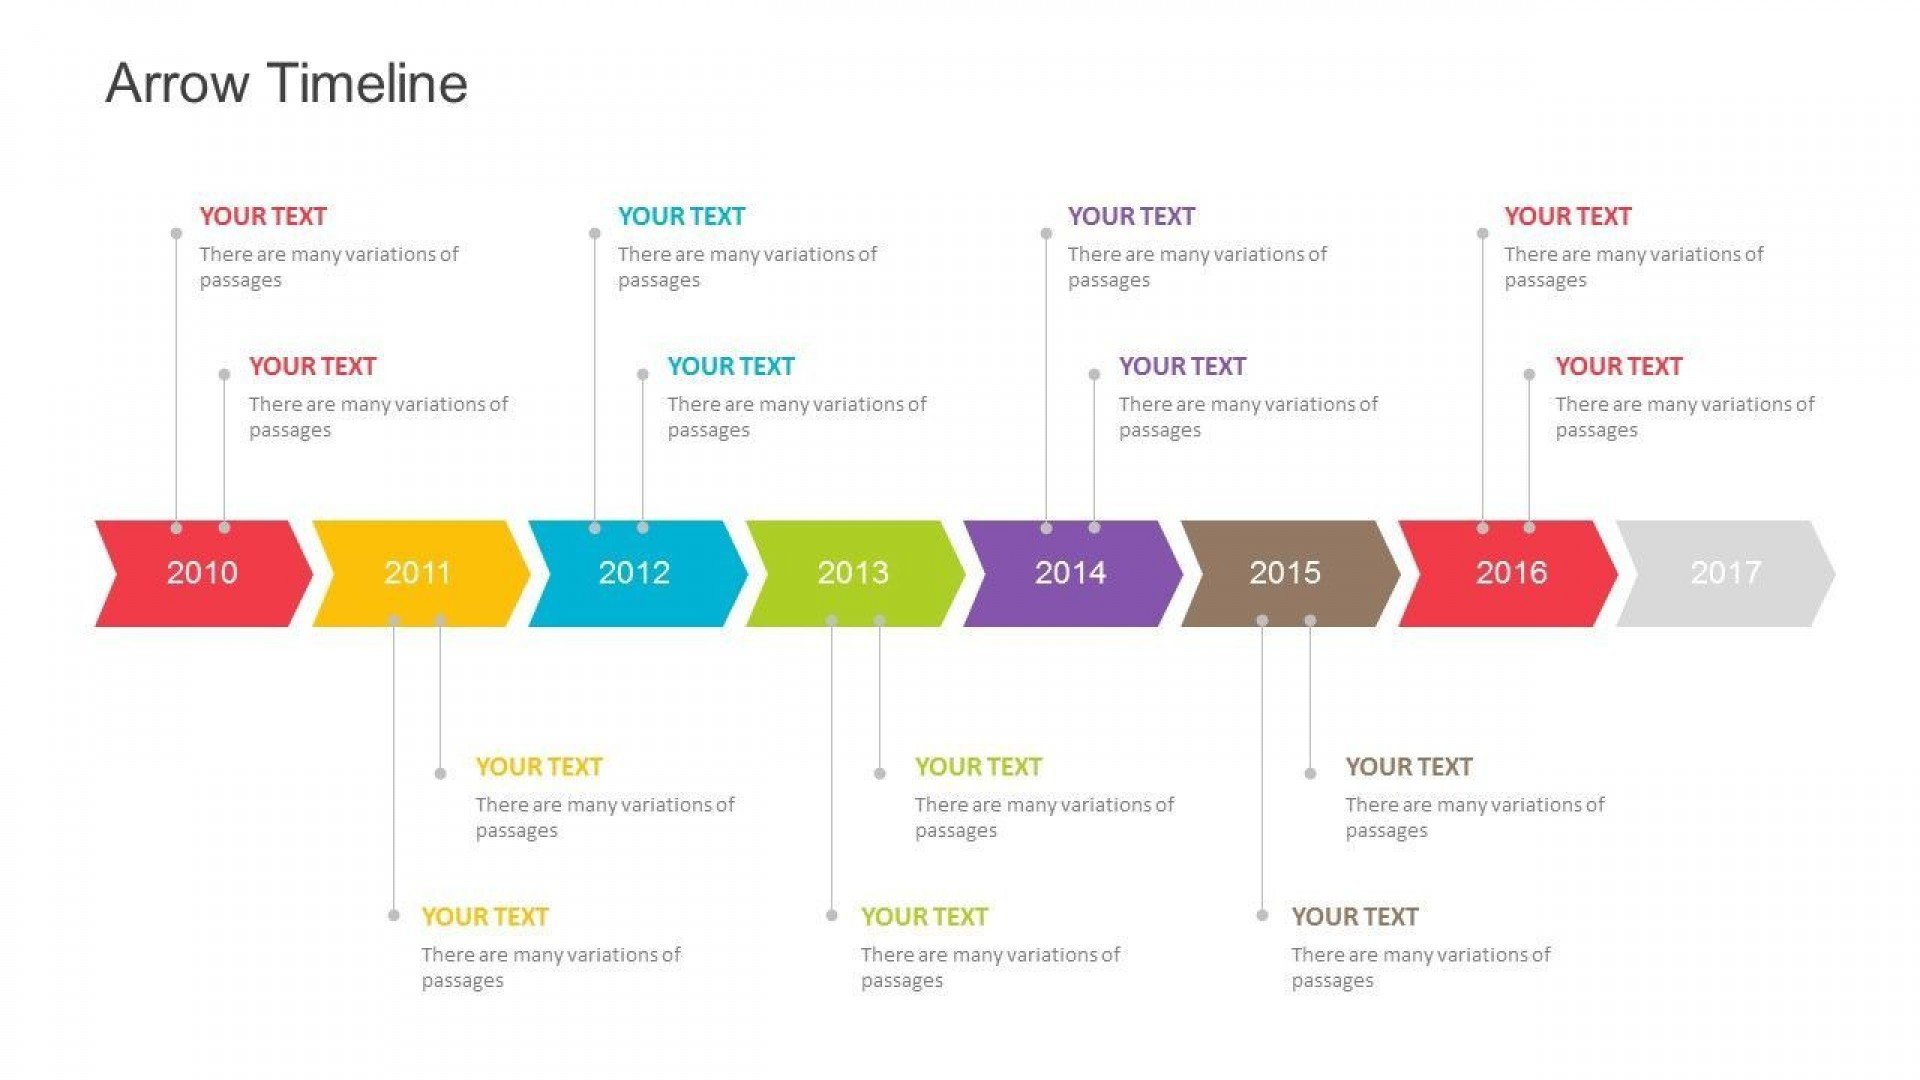 004 Outstanding Timeline Template For Powerpoint High Def  Presentation Project Management Mac1920